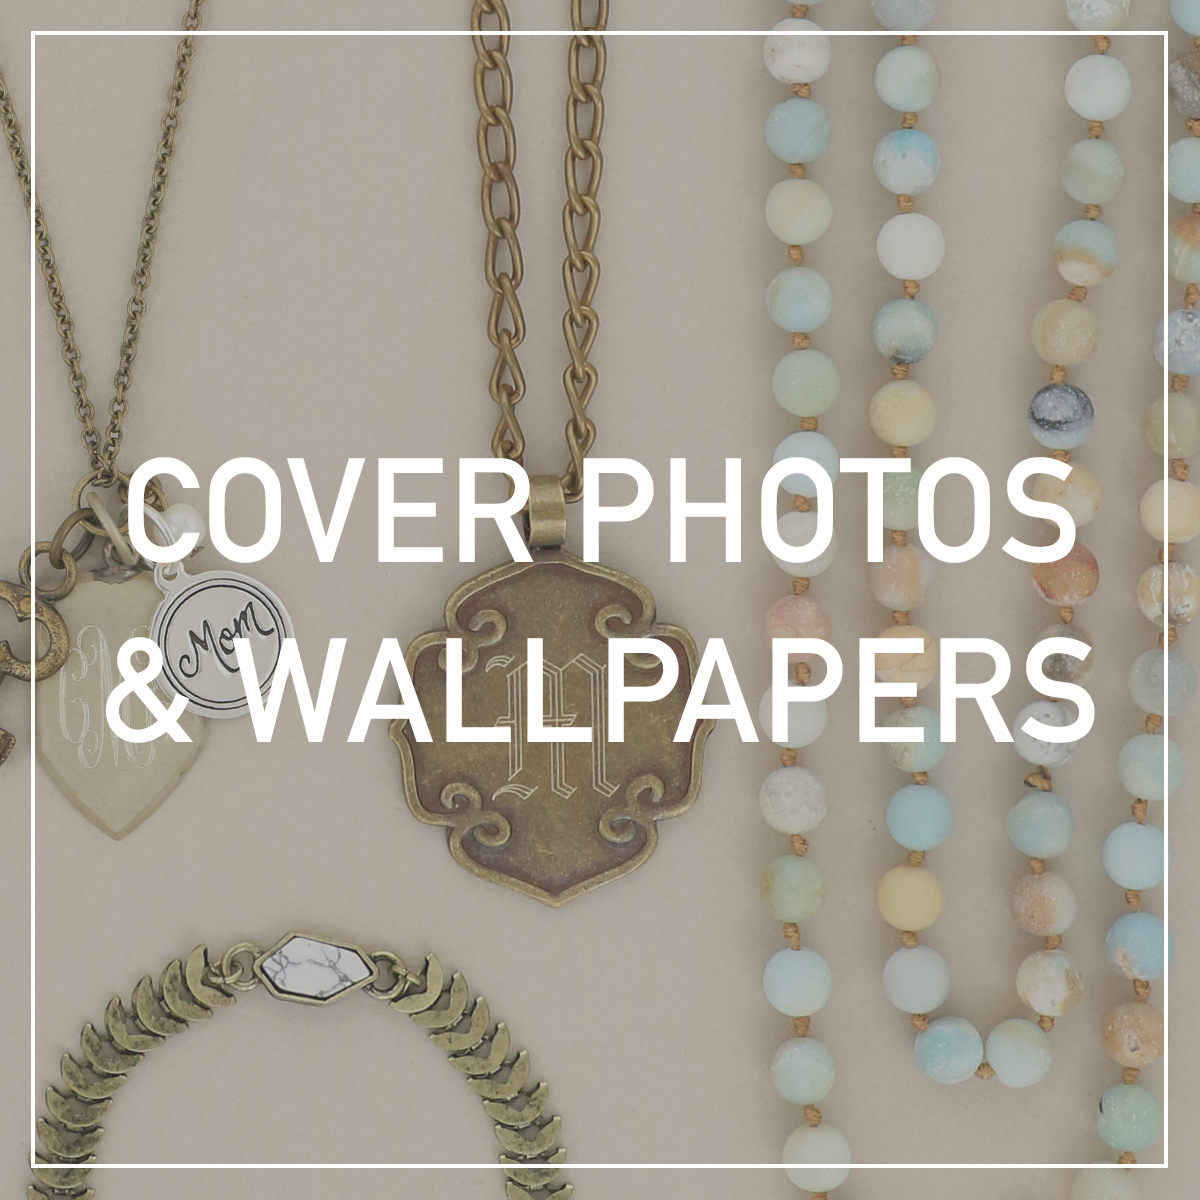 Facebook-Cover-Photos-Featuring-Initial-Outfitters-Pieces-Promotions-wallpaper-wp5007302